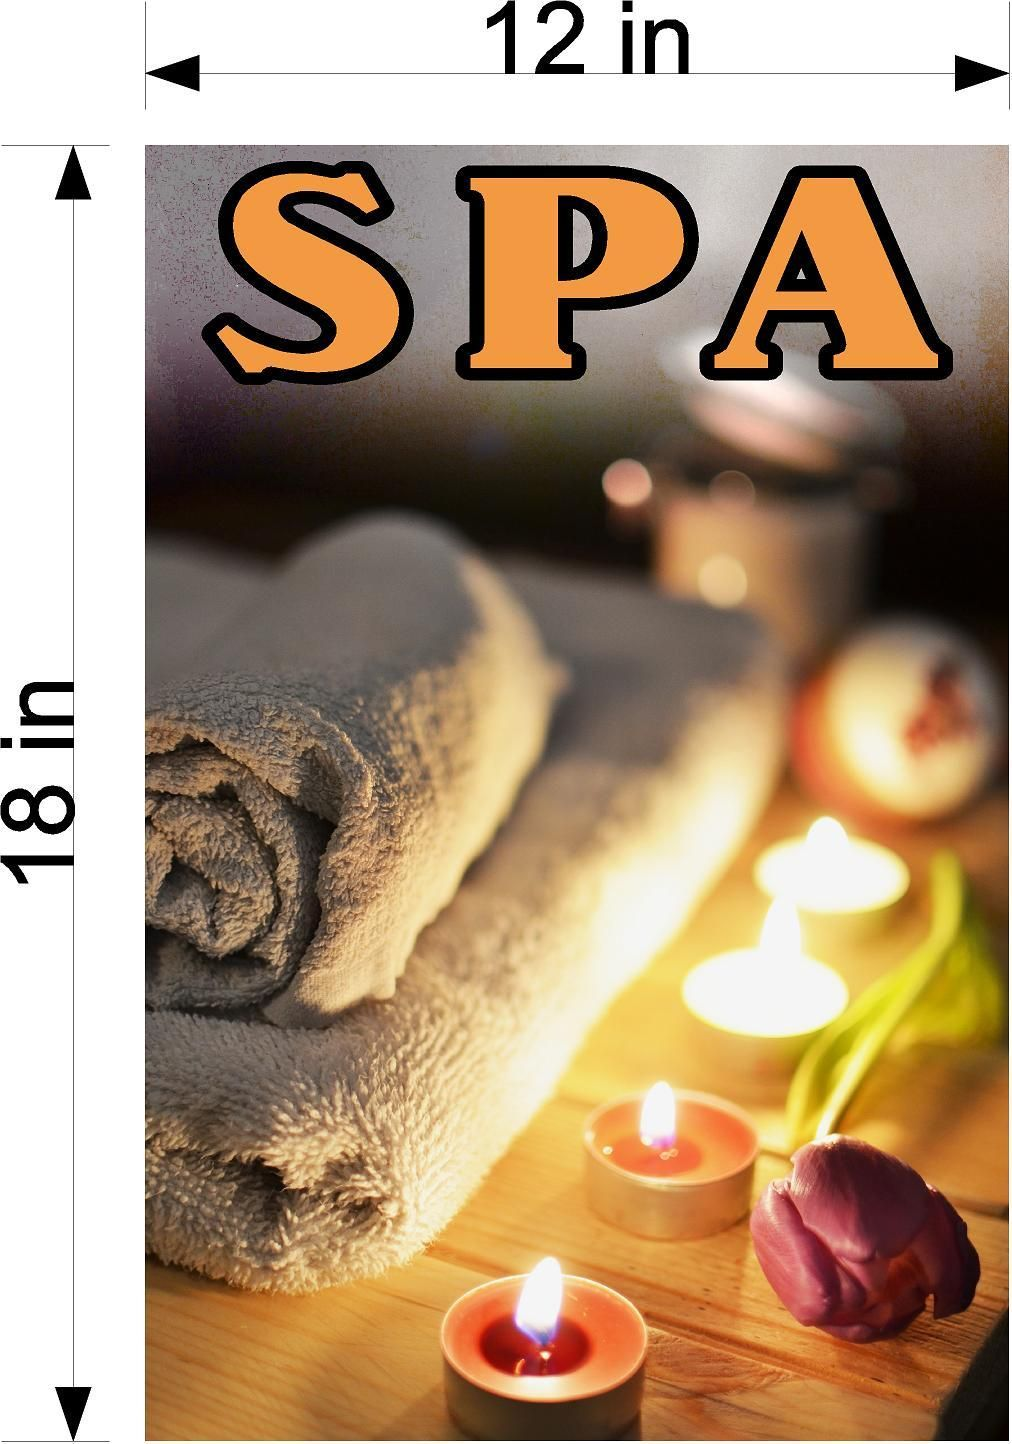 Spa 15 Vertical Wallpaper Poster Decal With Adhesive Backing